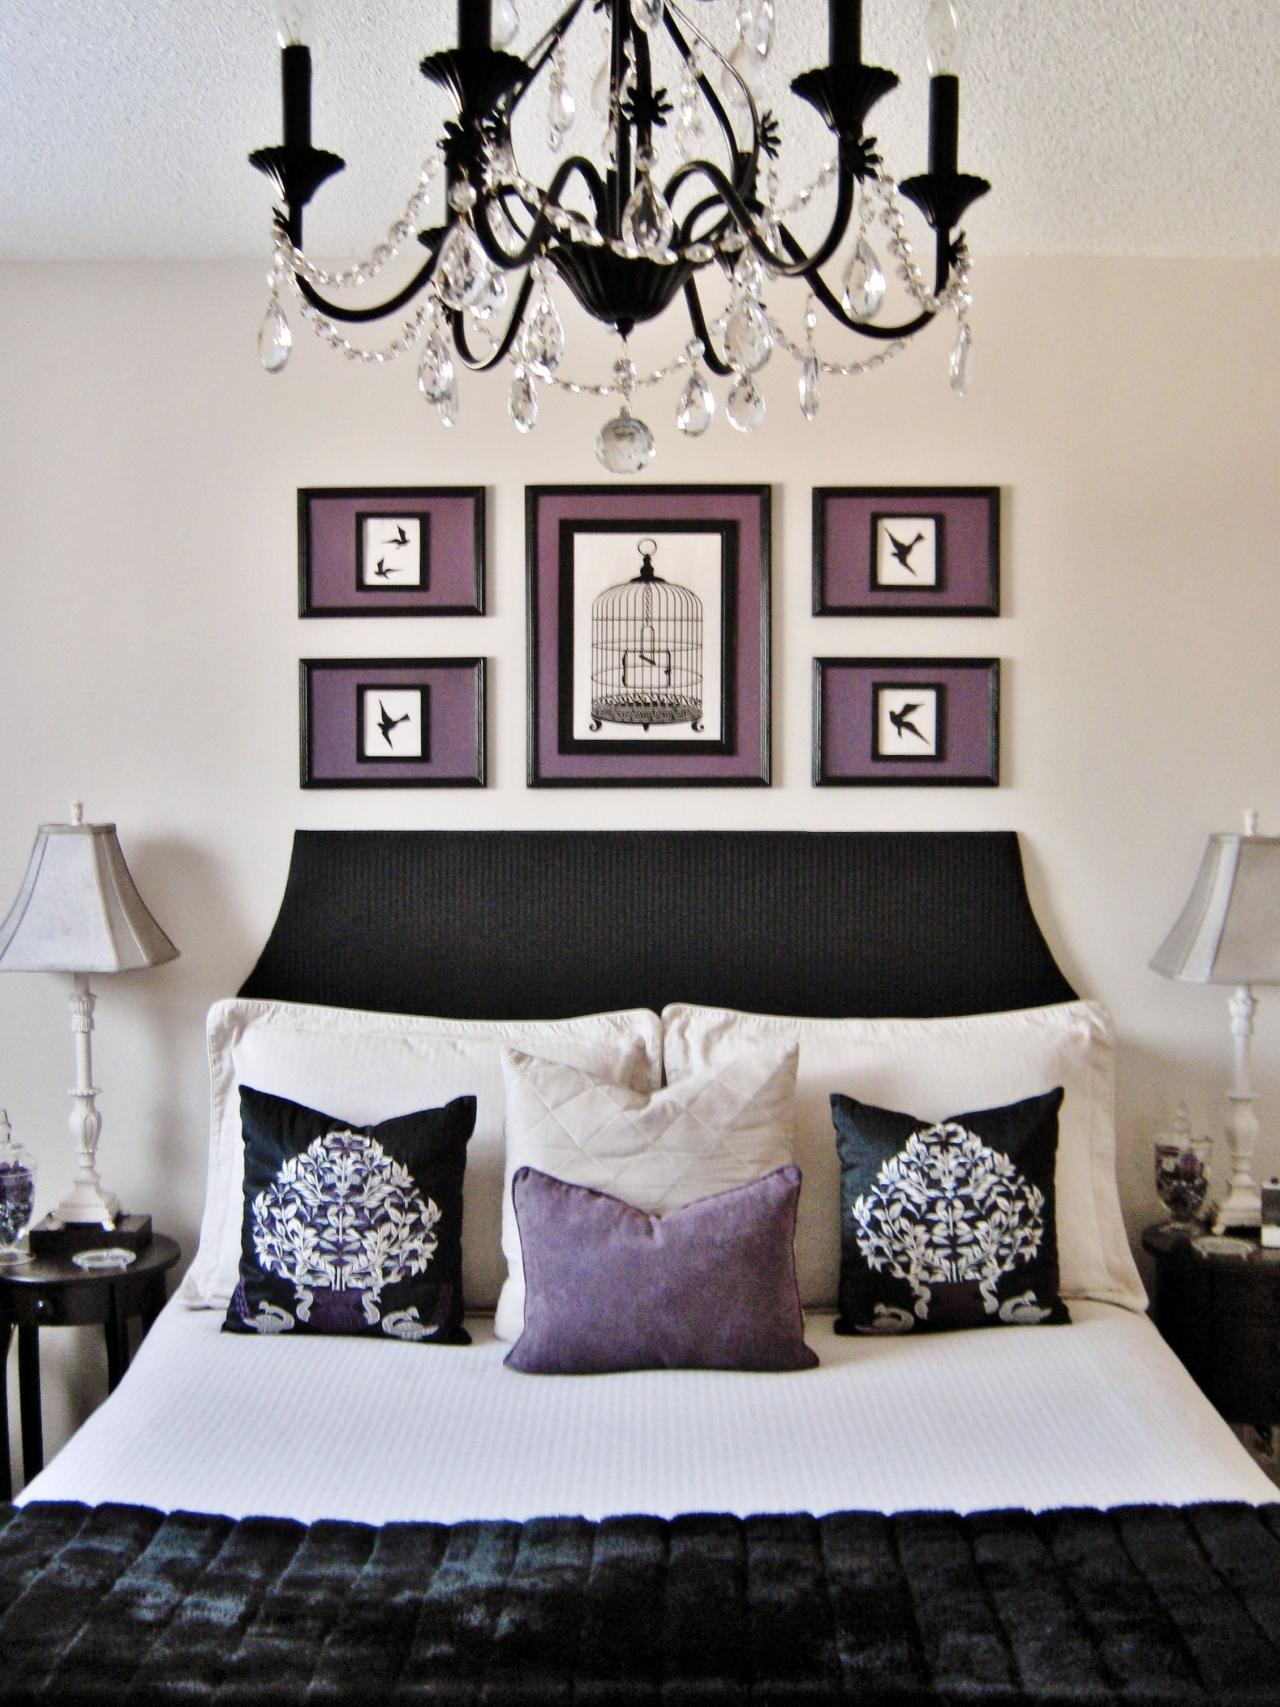 photos-hgtv-elegant-bedroom-with-black-chandelier_bedroom-white-and-black_bedroom_hello-kitty-bedroom-set-benches-cool-ideas-design-bedrooms-beautiful-boys-mirrored-furniture-girl